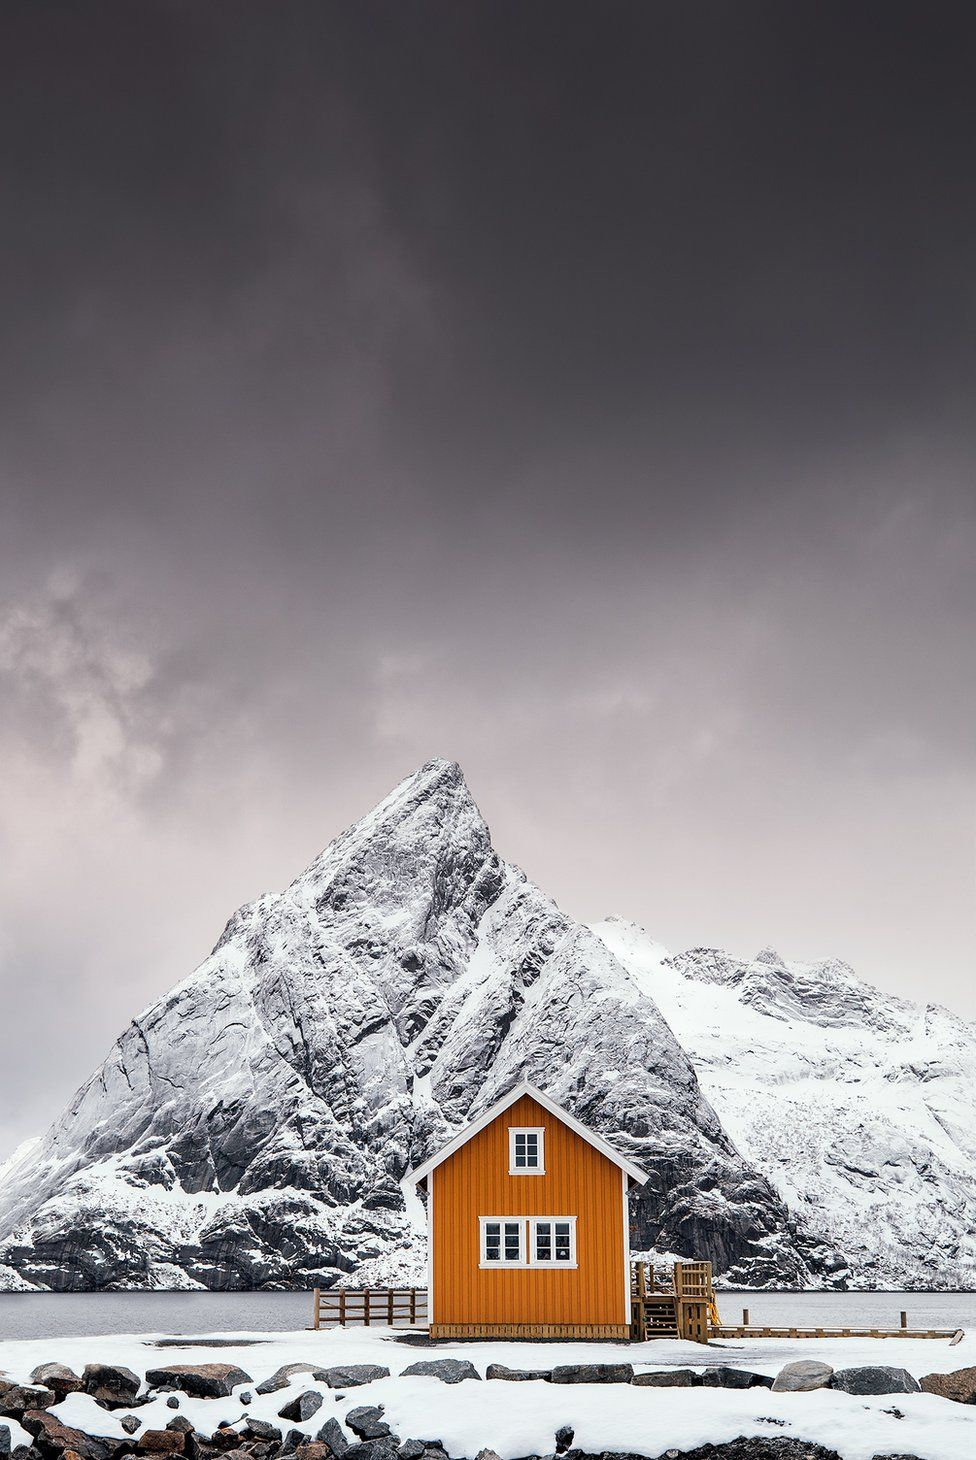 A house in Lofoten